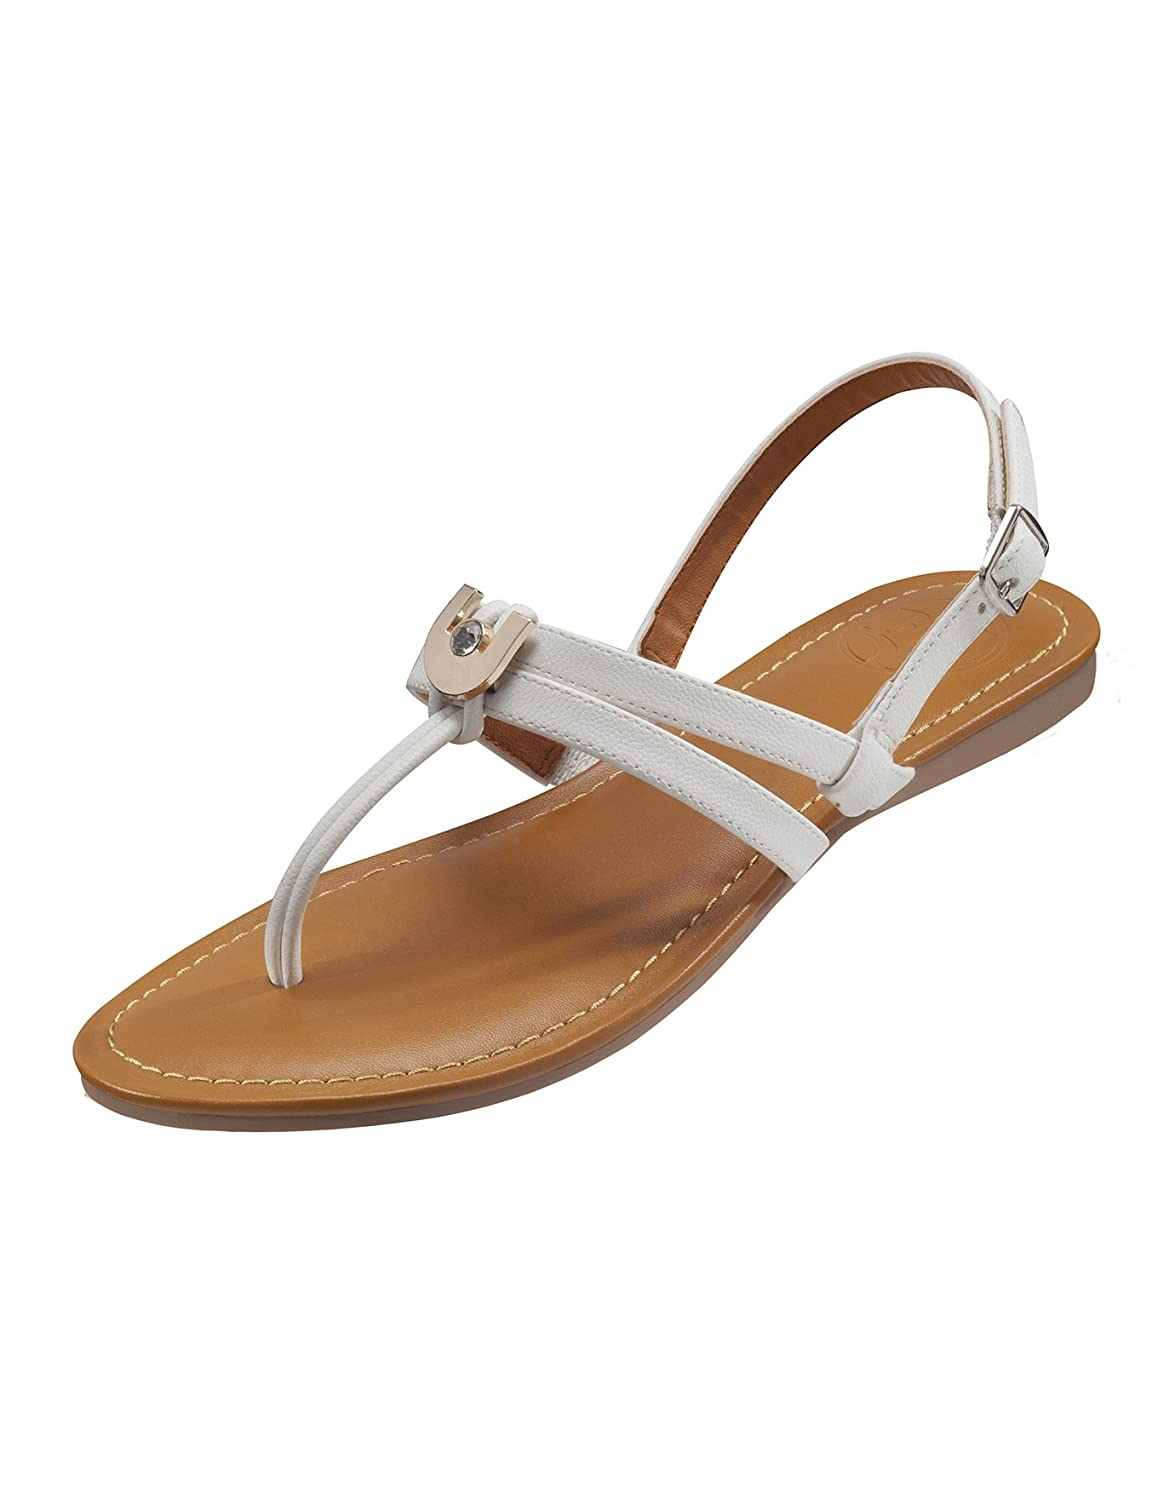 BW Sandals Women's Holly Sandals